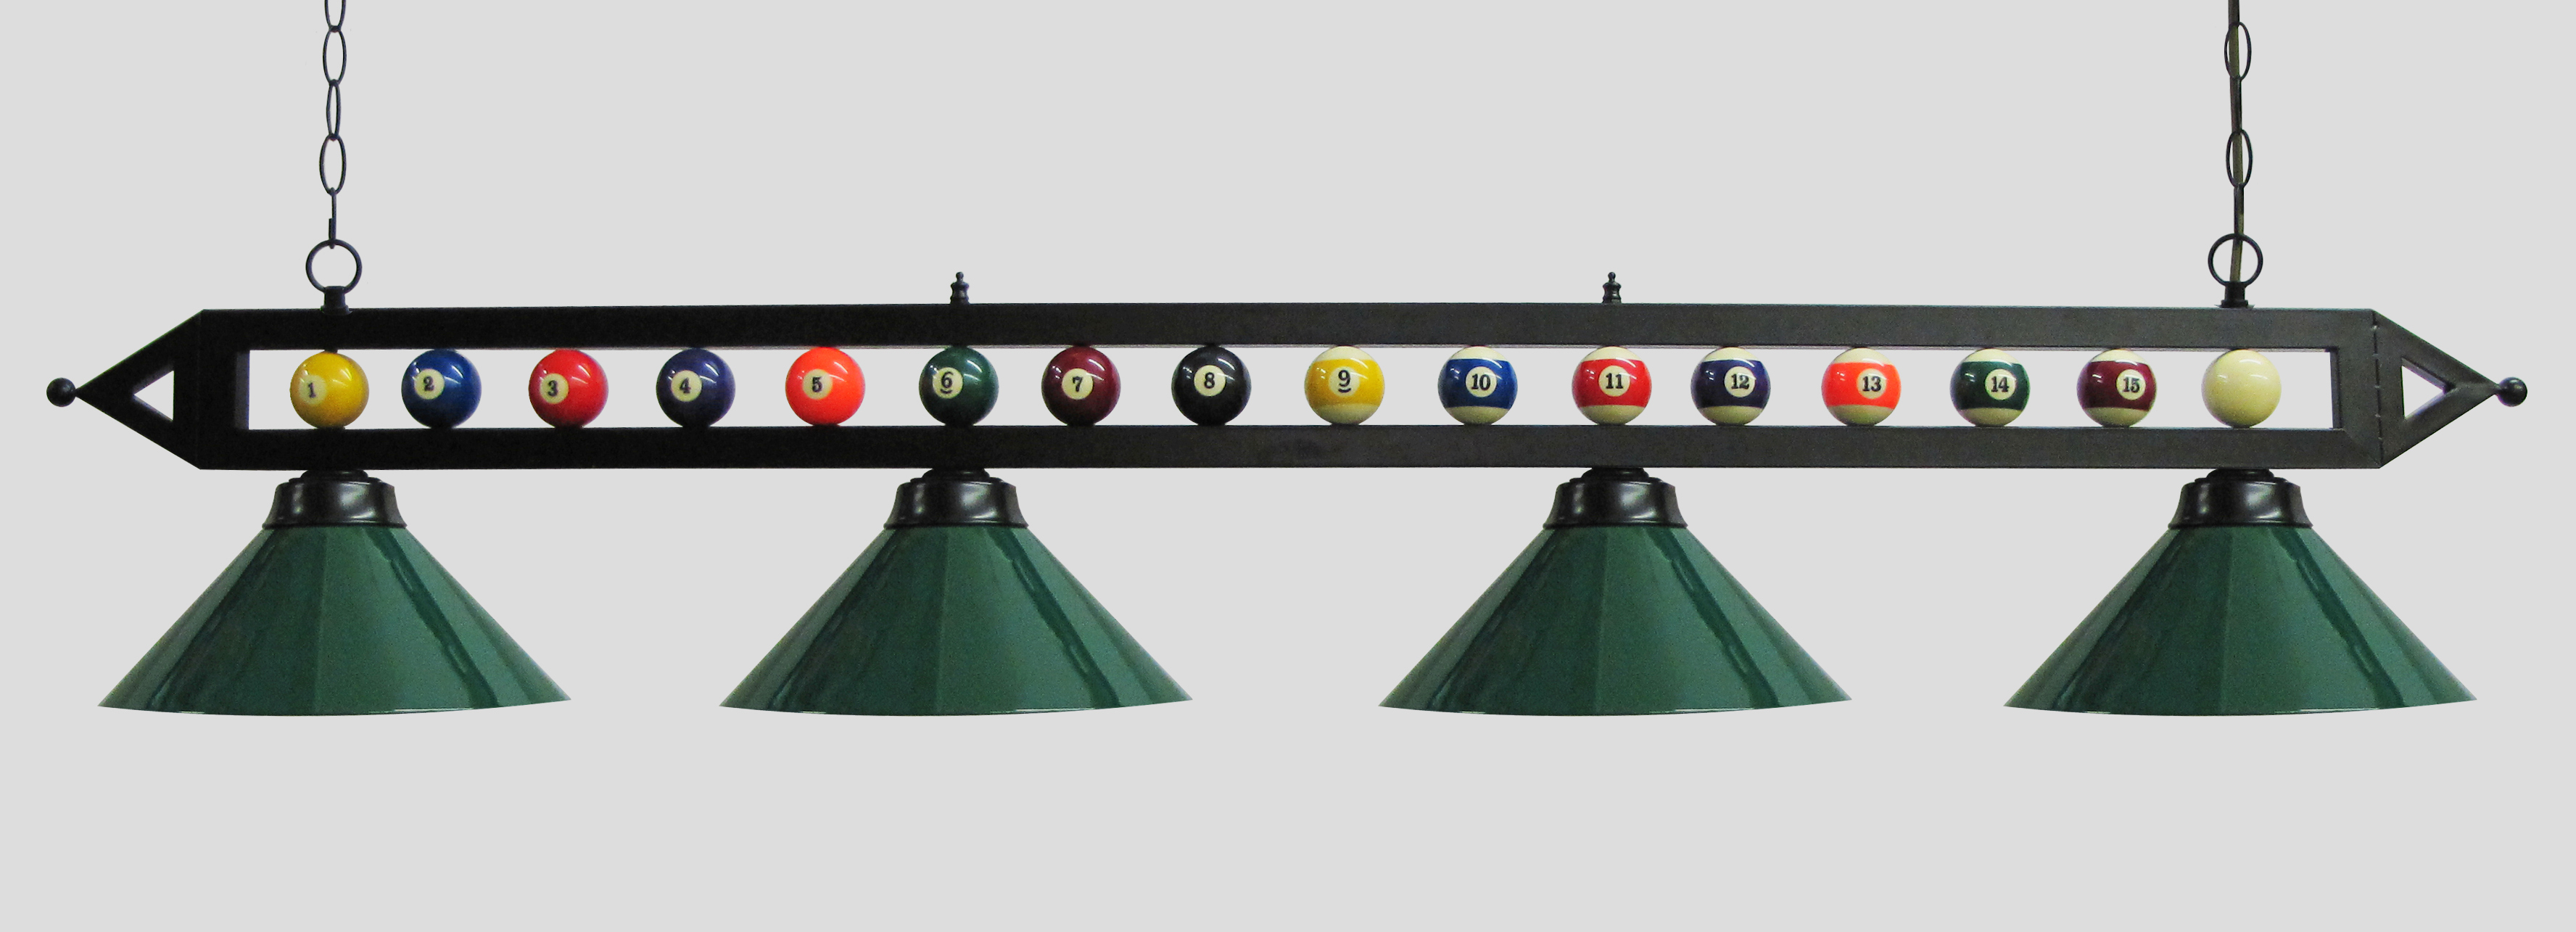 "72"" Black Metal Ball Design Pool Table Light Pool Table Light W Green Metal Shades by"